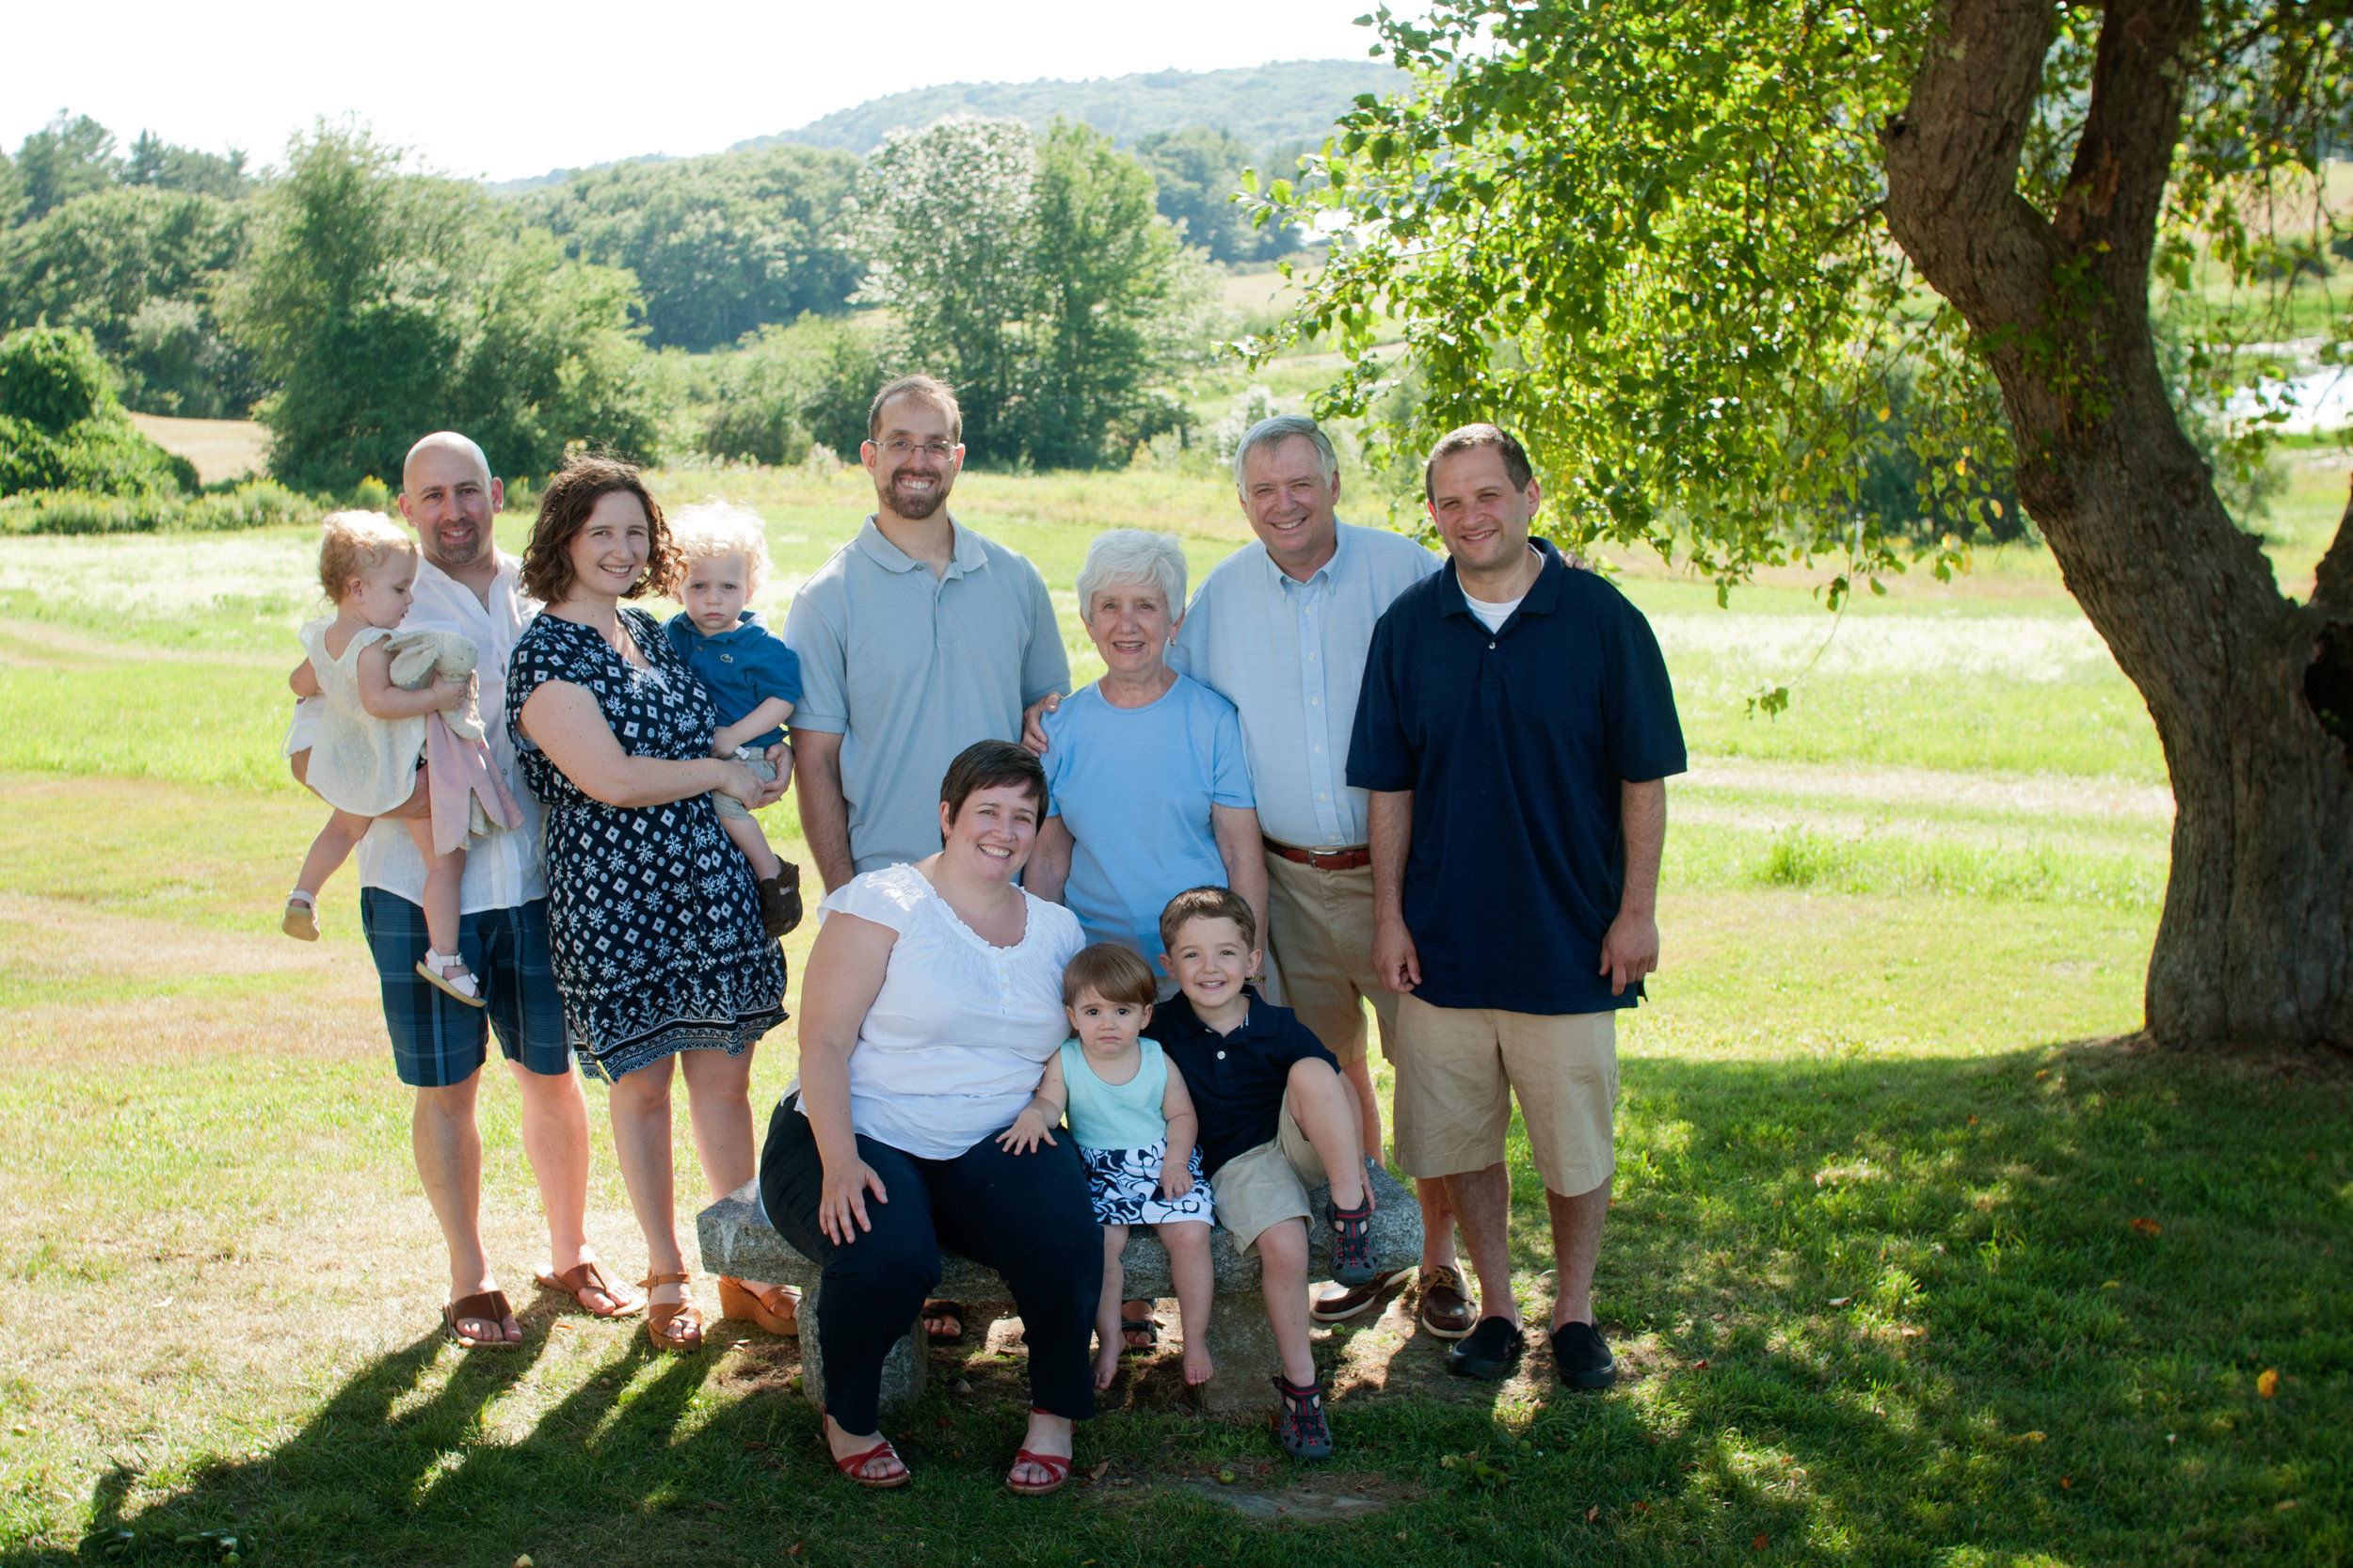 portrait of eleven people in the shade of a large field